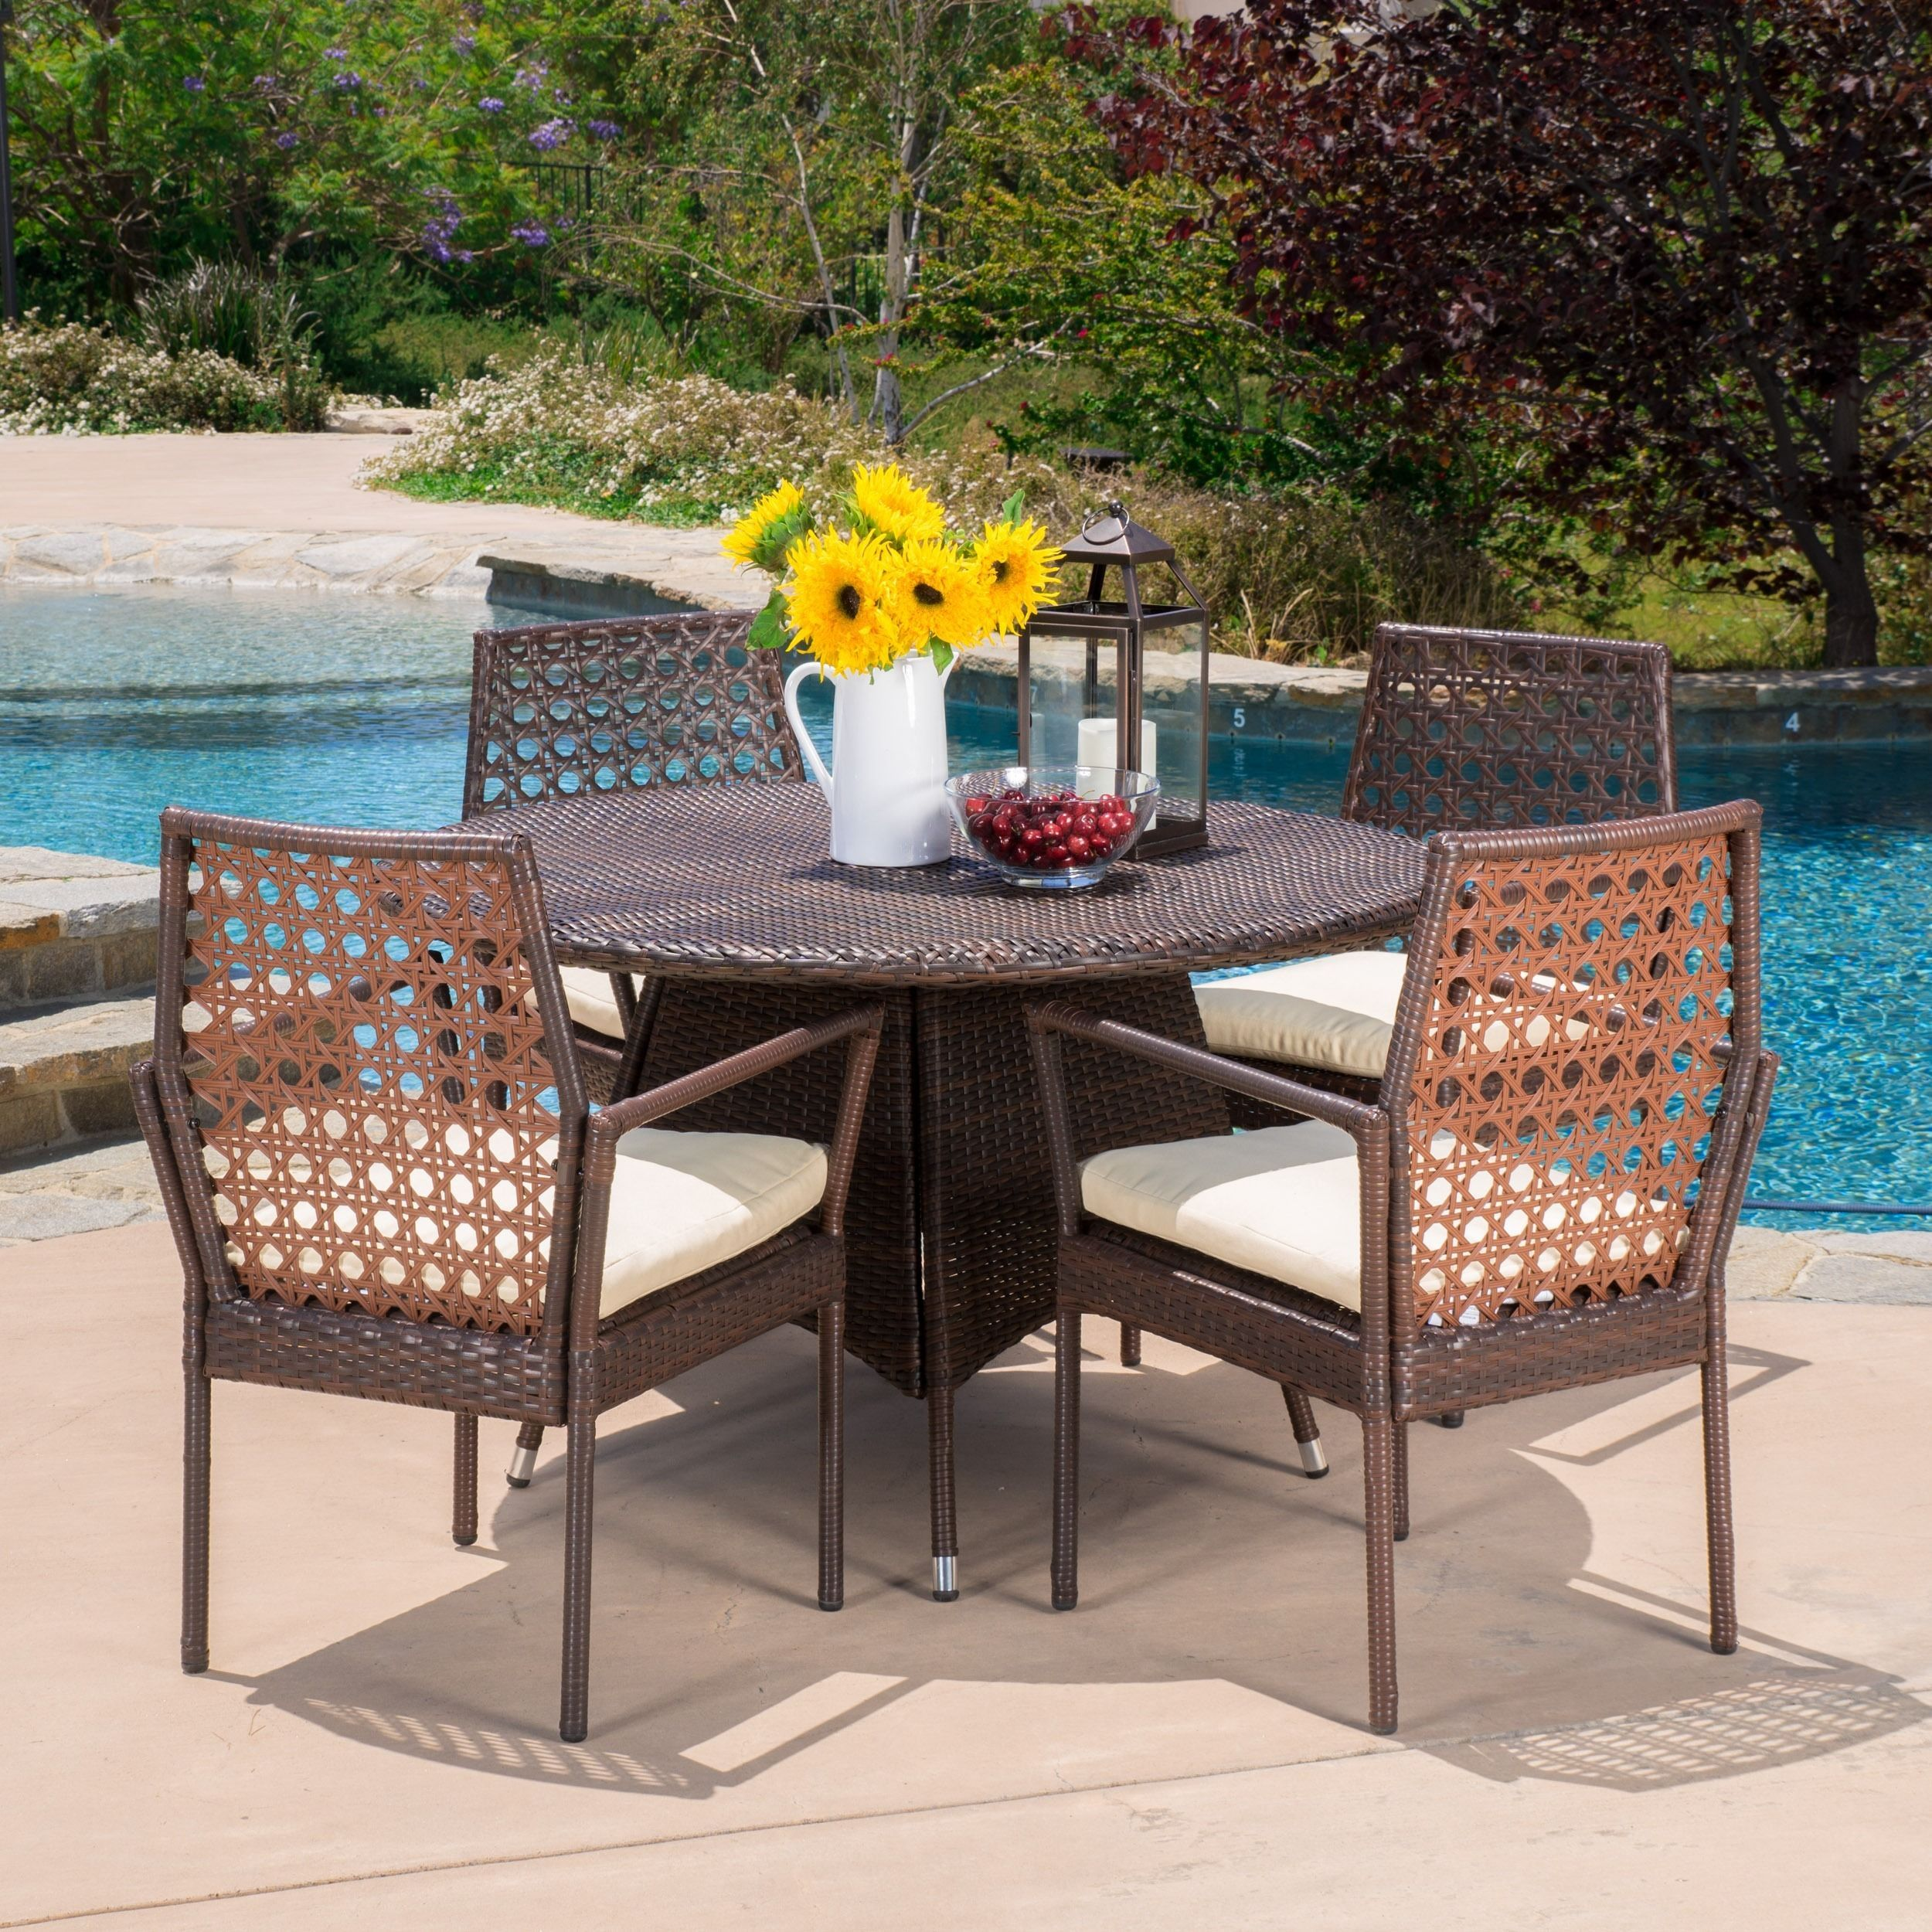 Parry Outdoor 5 Piece Wicker Dining Set With Cushions By